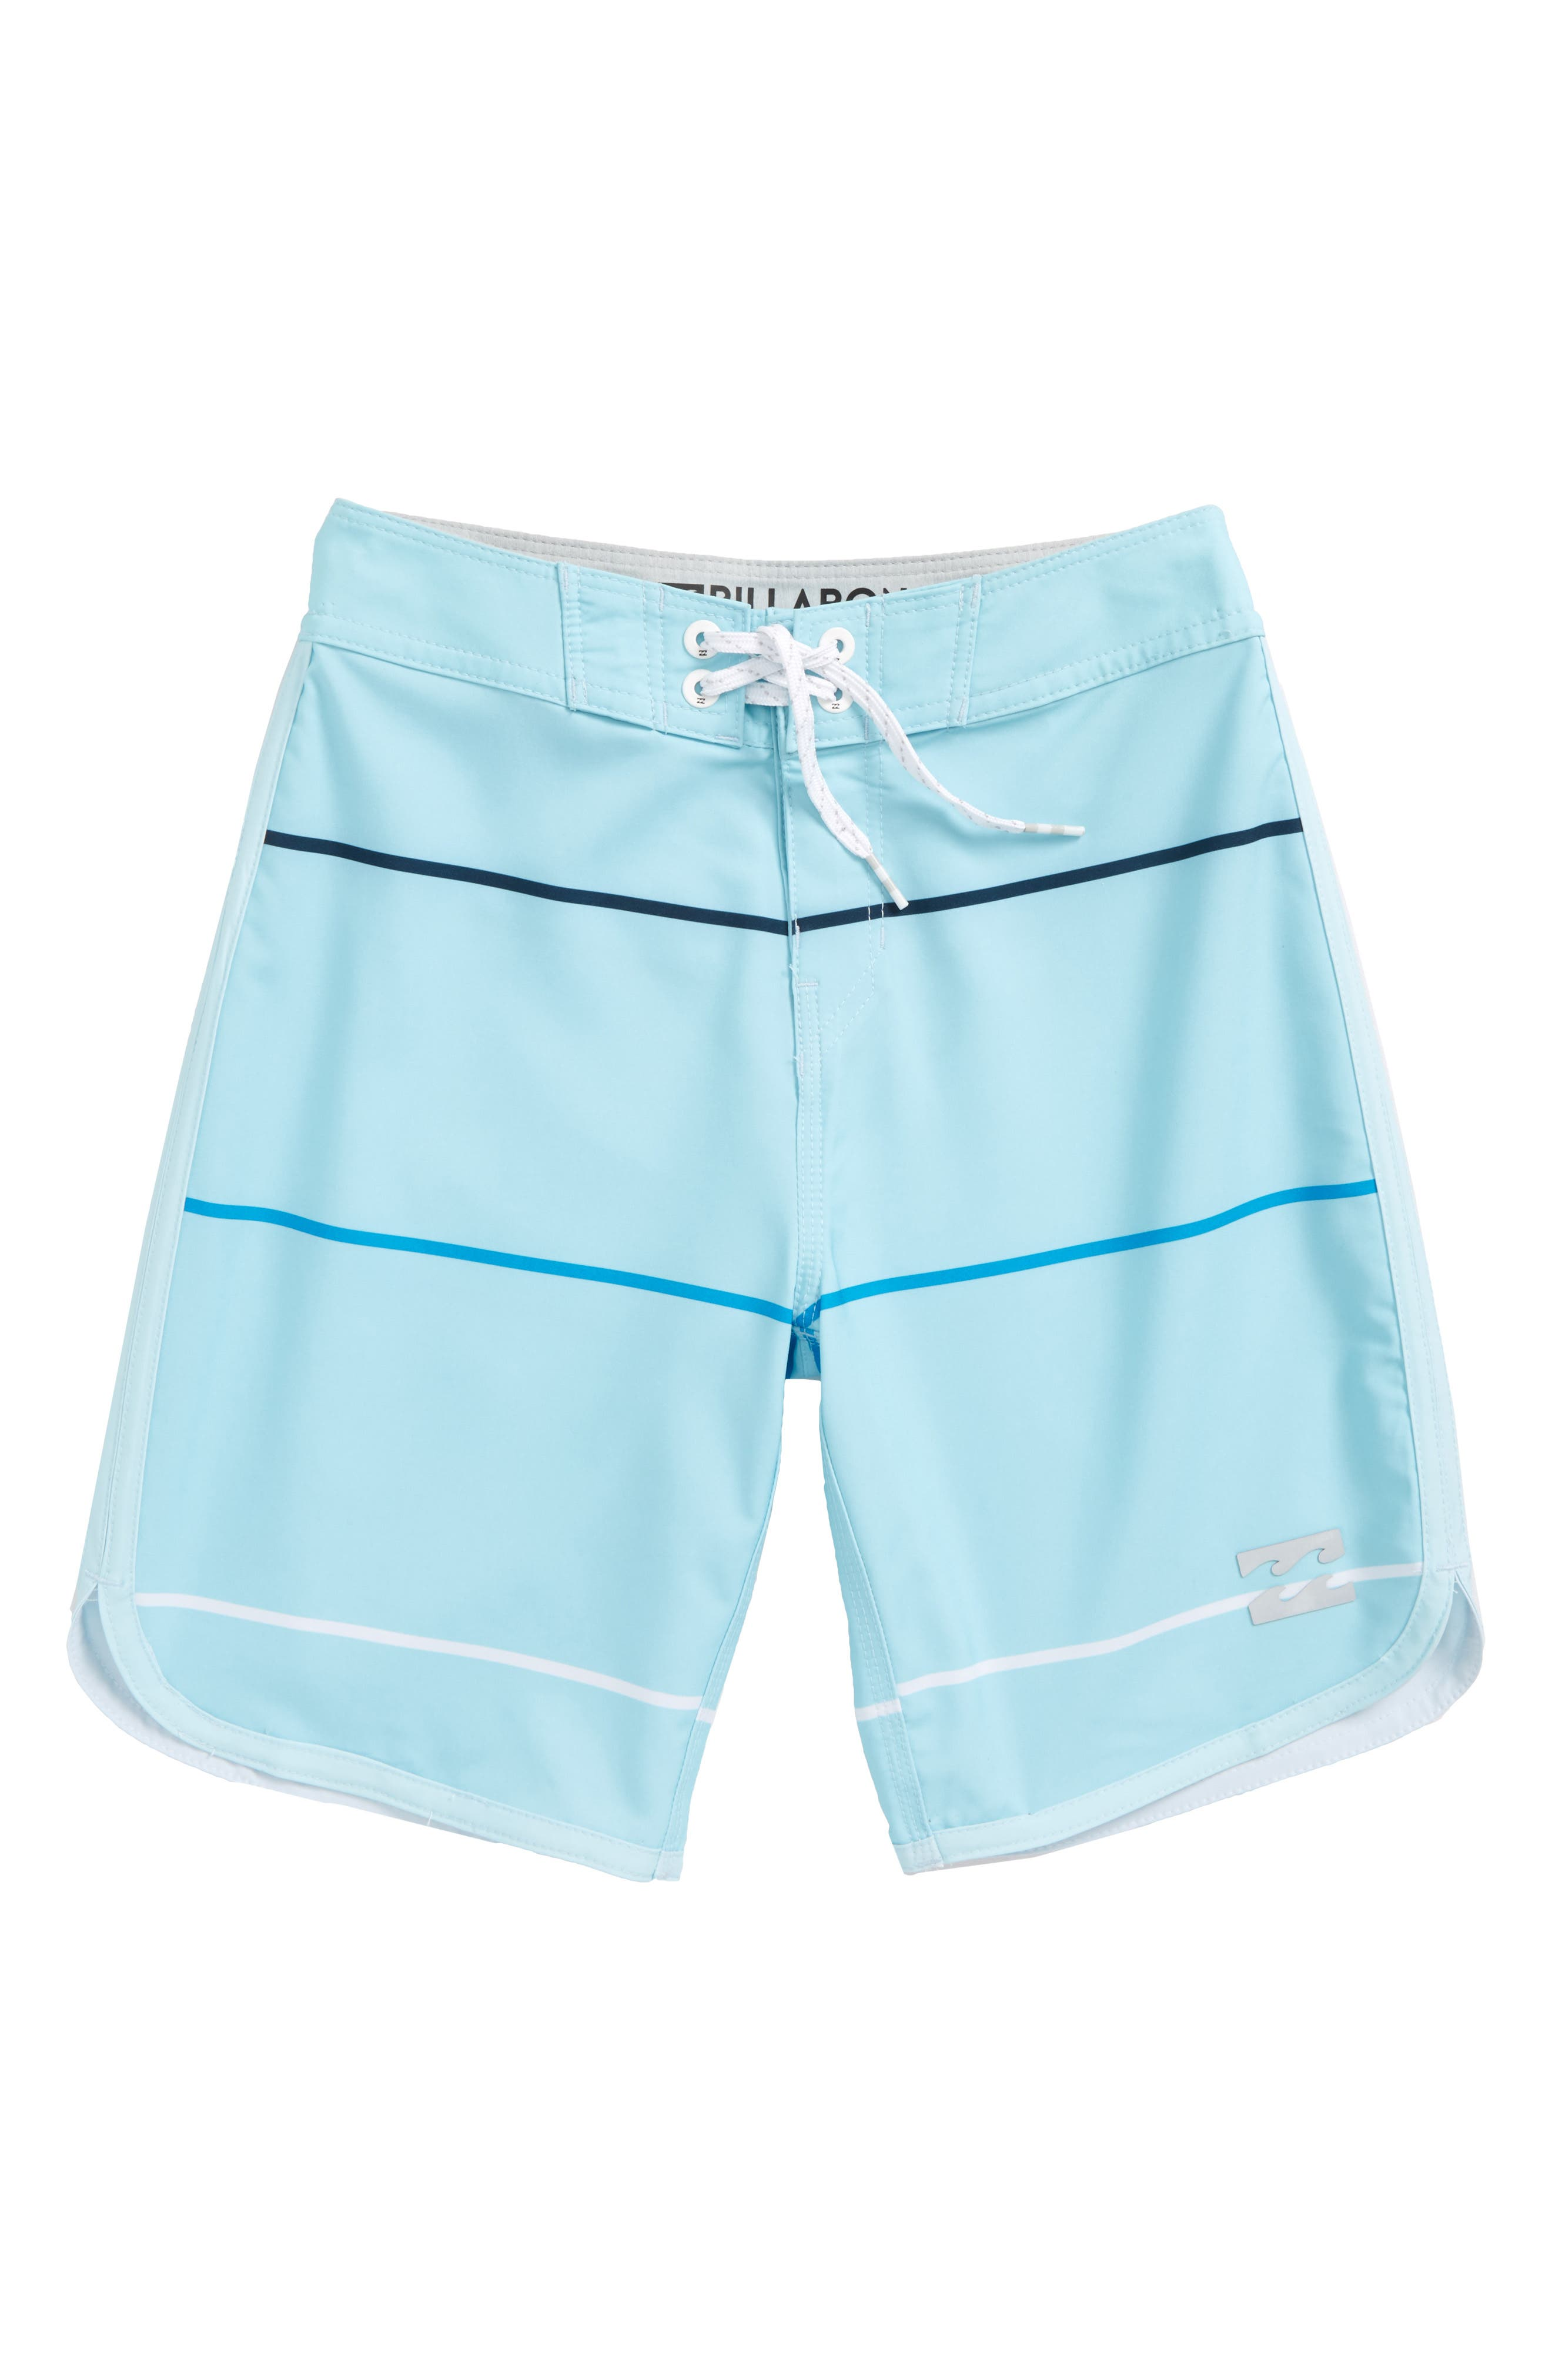 73 X Stripe Board Shorts,                             Main thumbnail 1, color,                             454